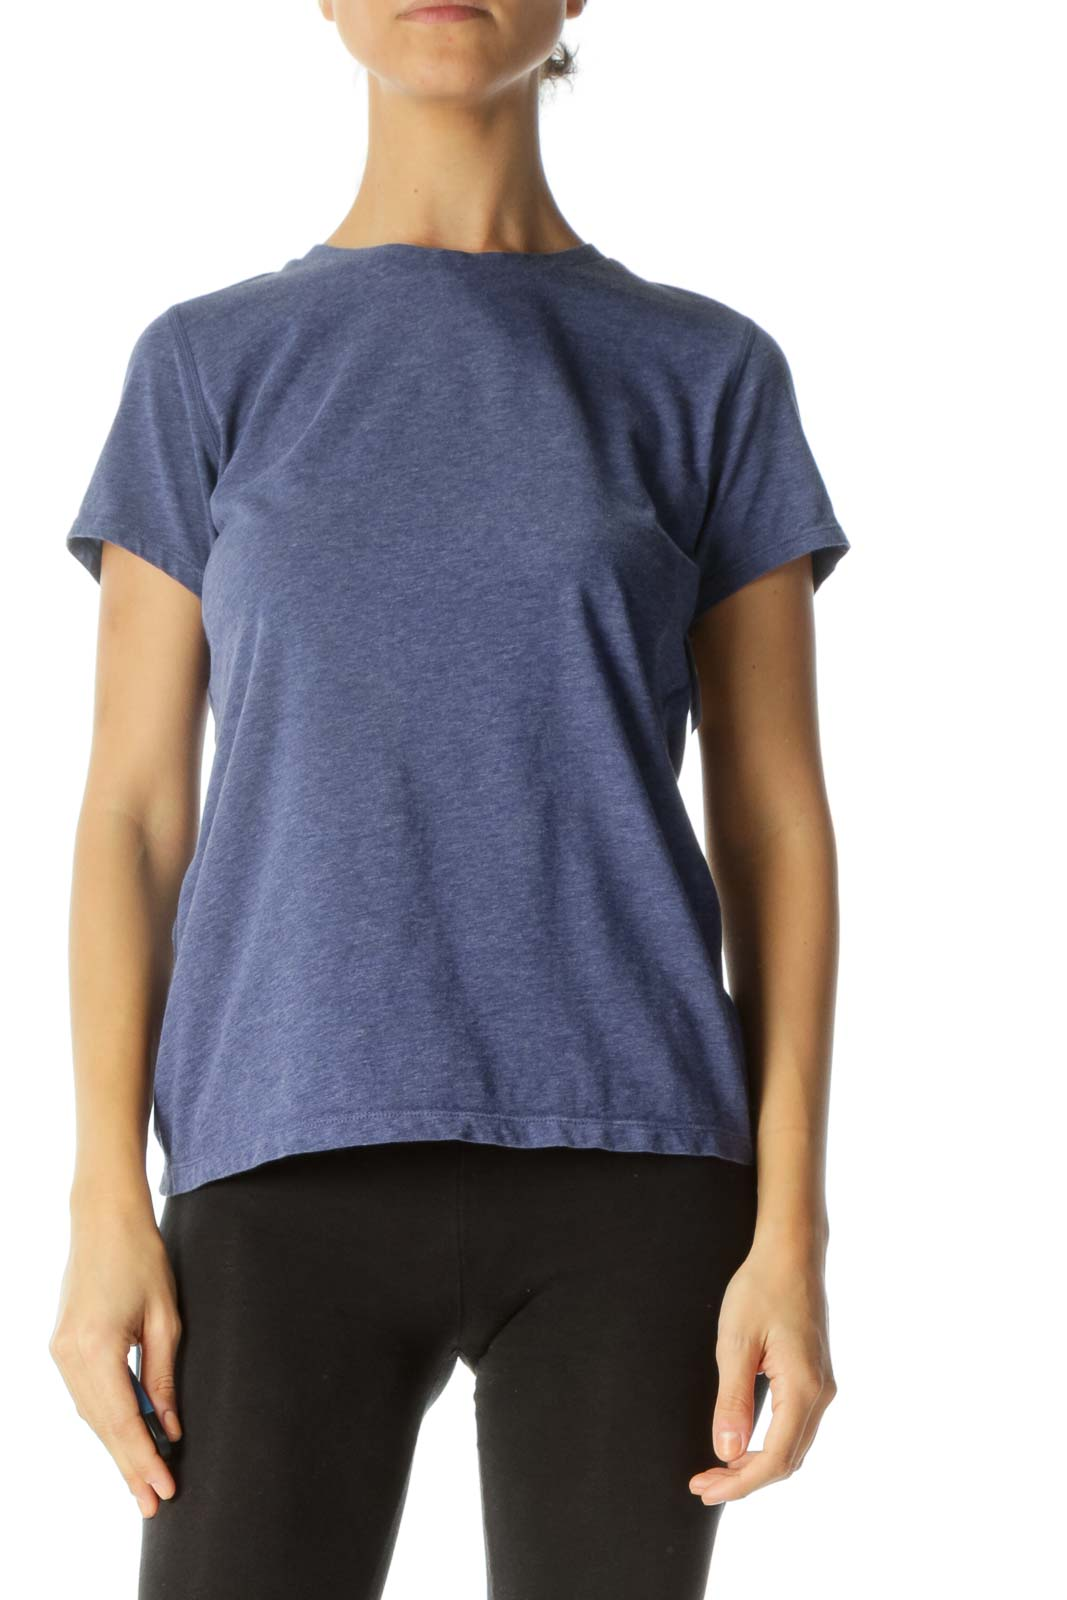 Heathered Navy Short-Sleeve Fitted Active-Wear Top